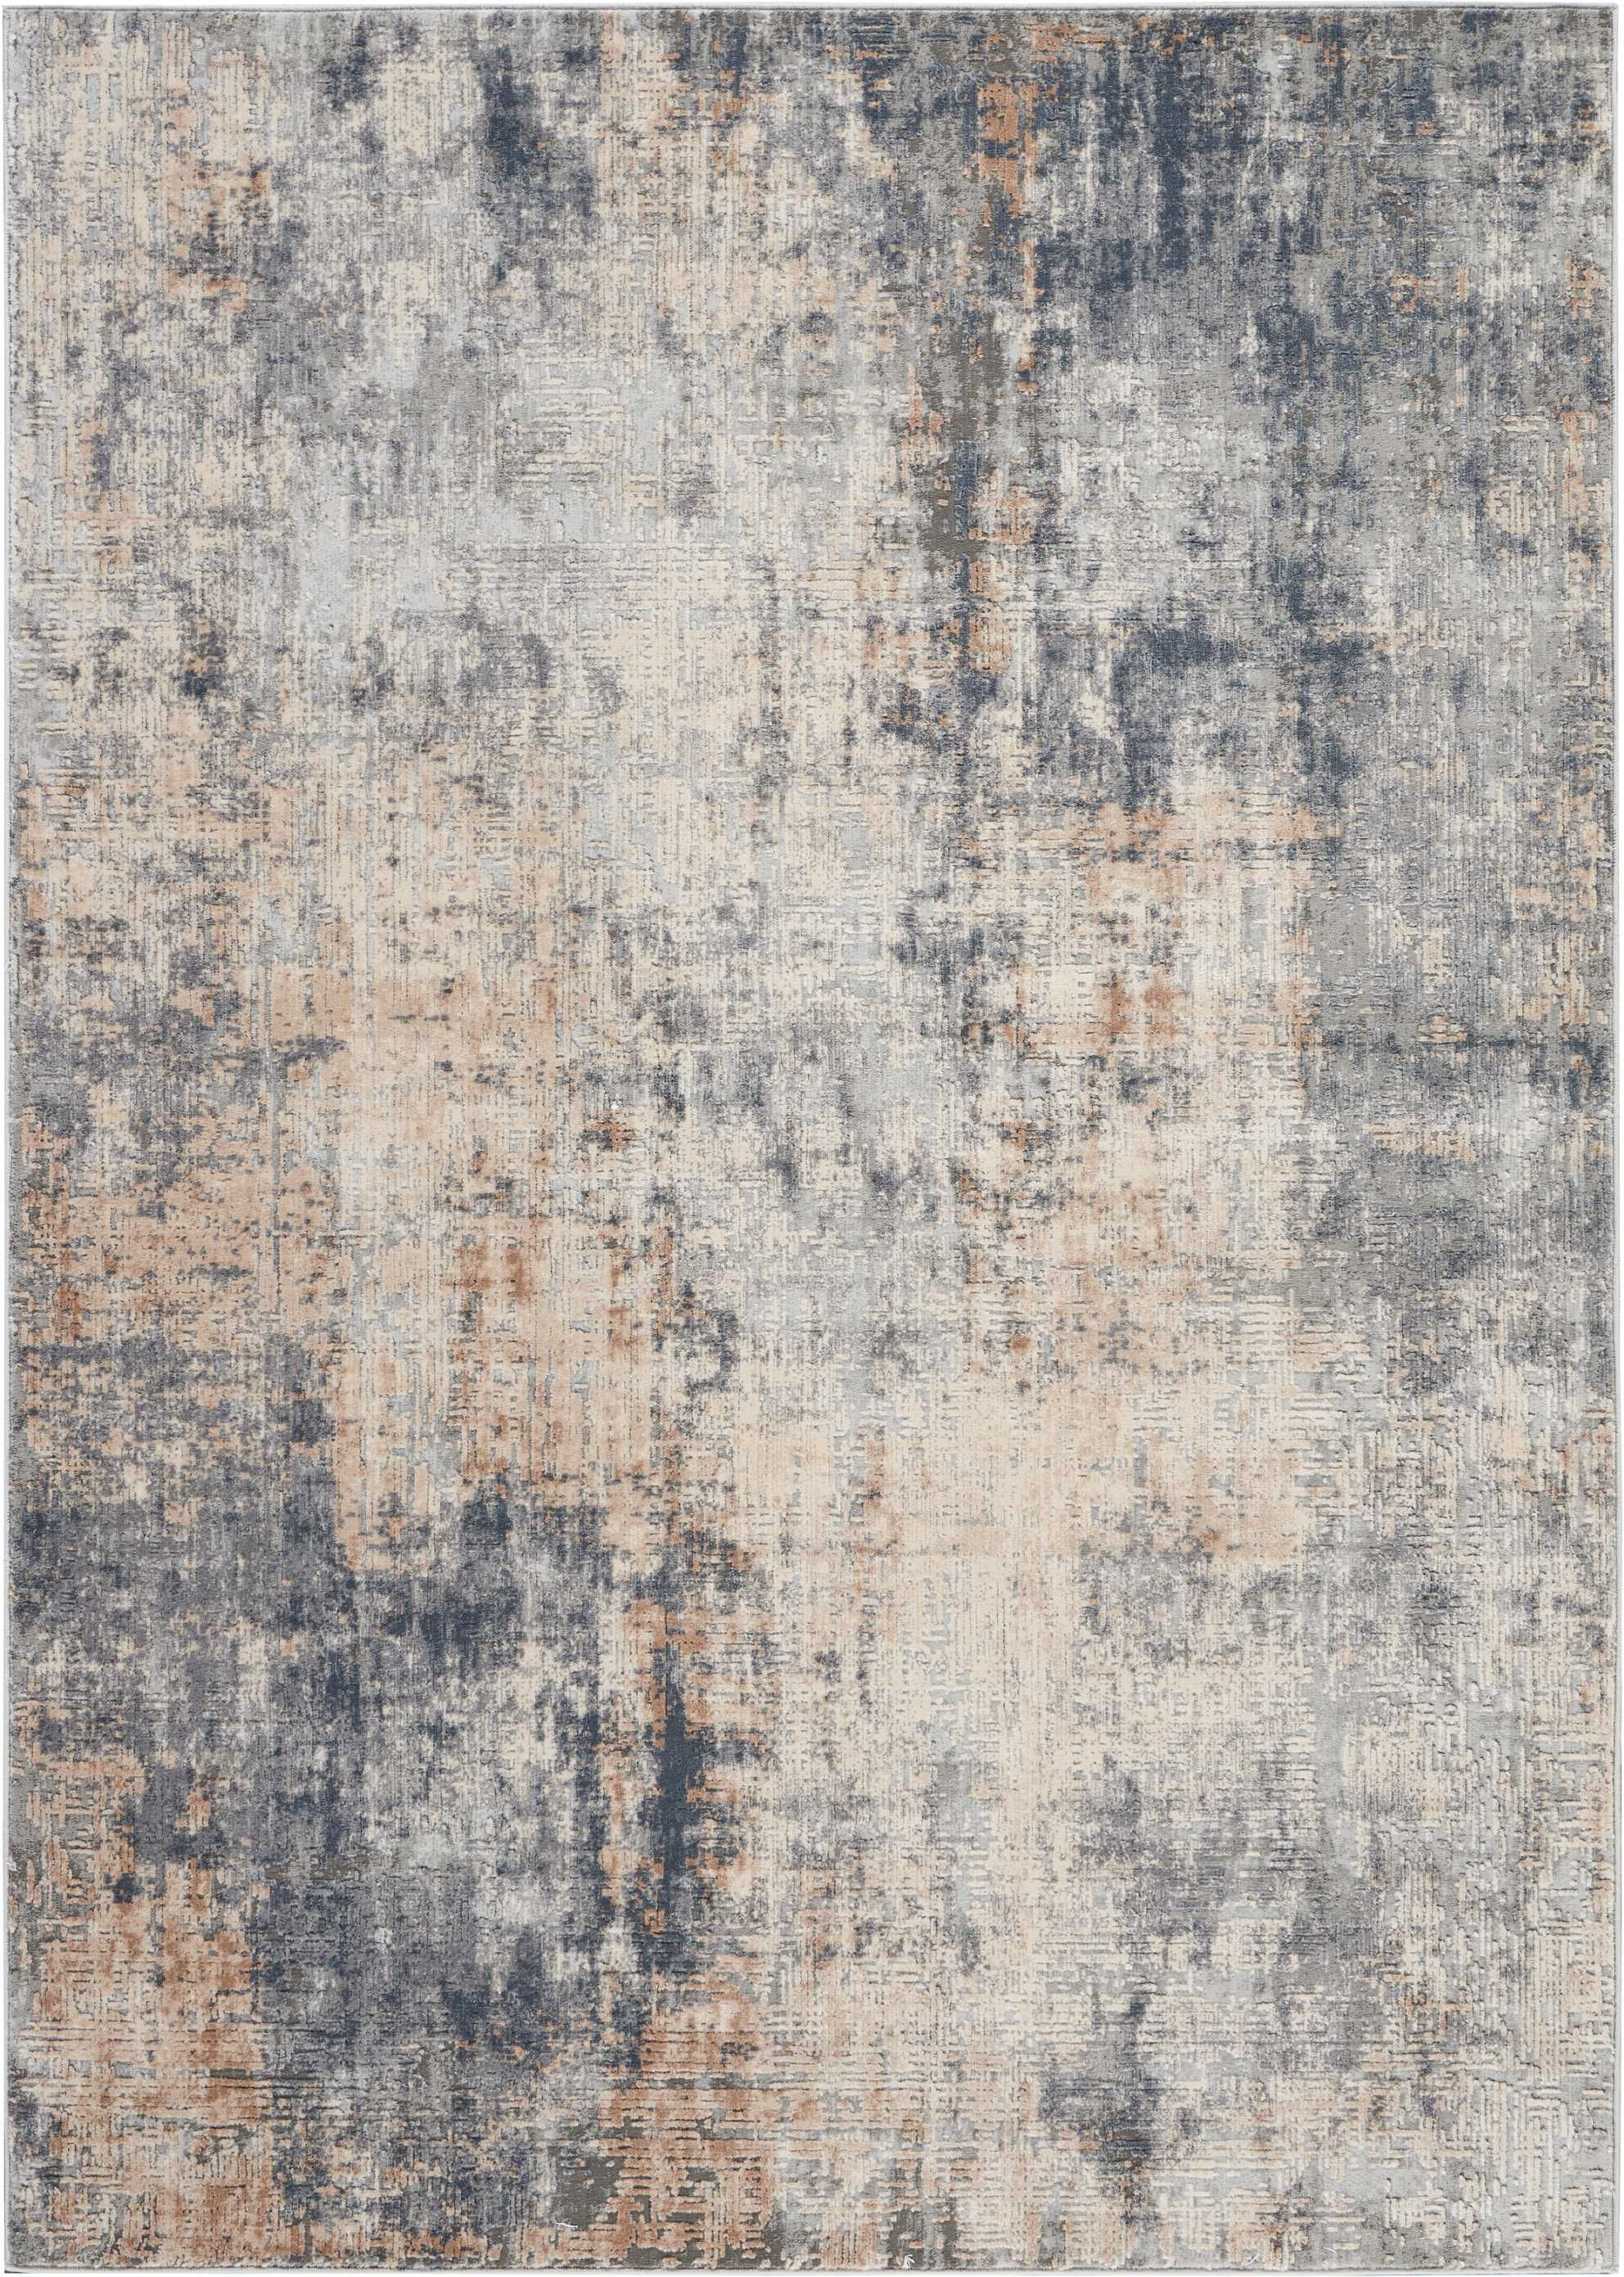 Contemporary & Modern Rugs-RUSTIC TEXTURES-Oriental Designer Rugs